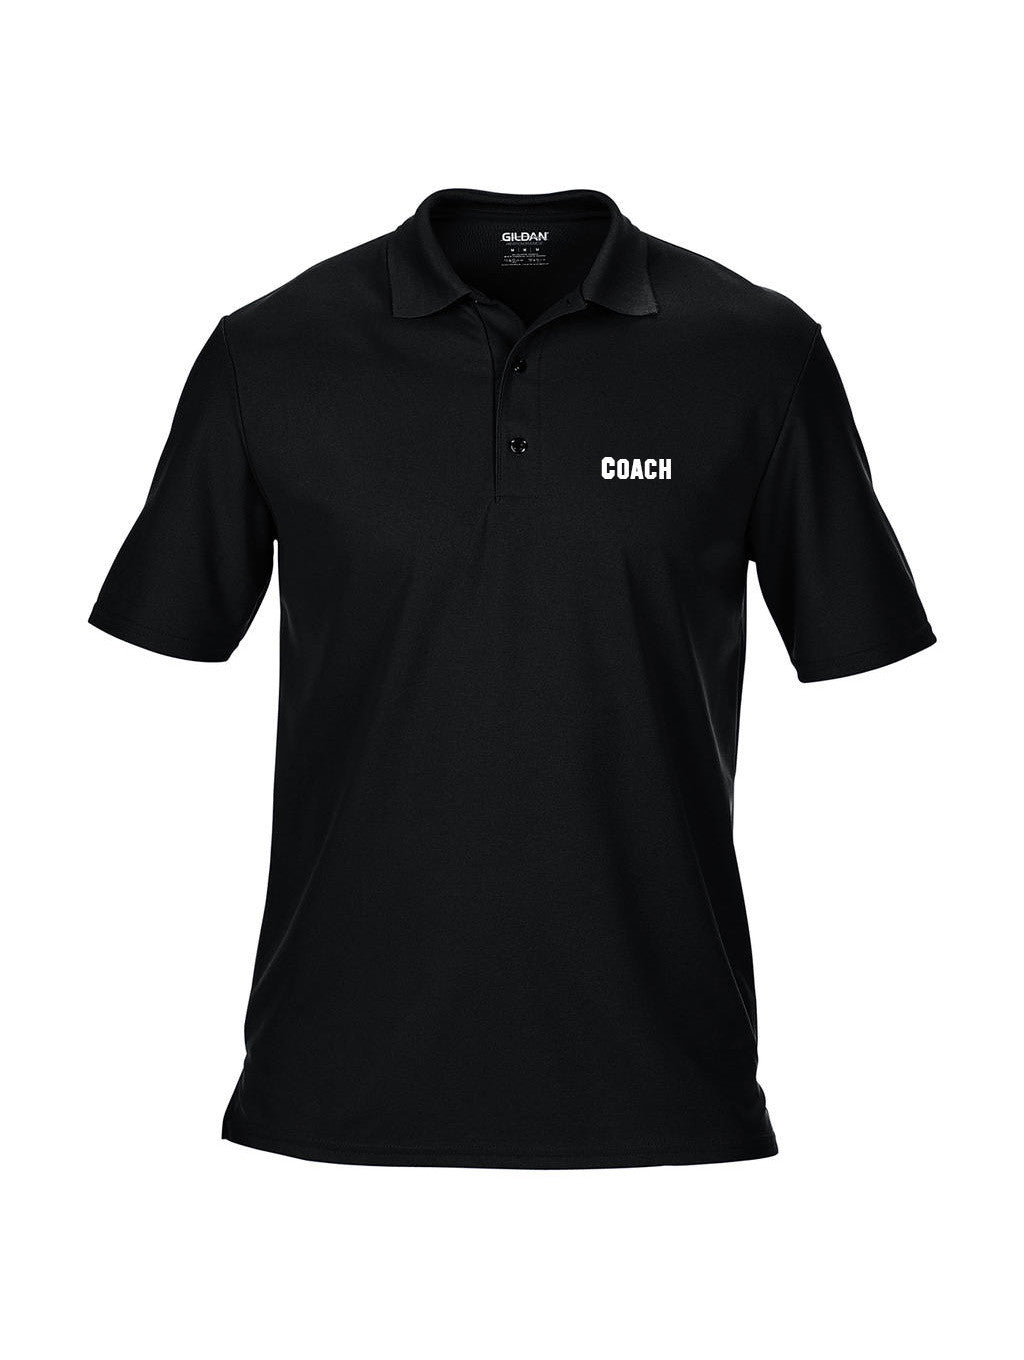 Coach basic polo